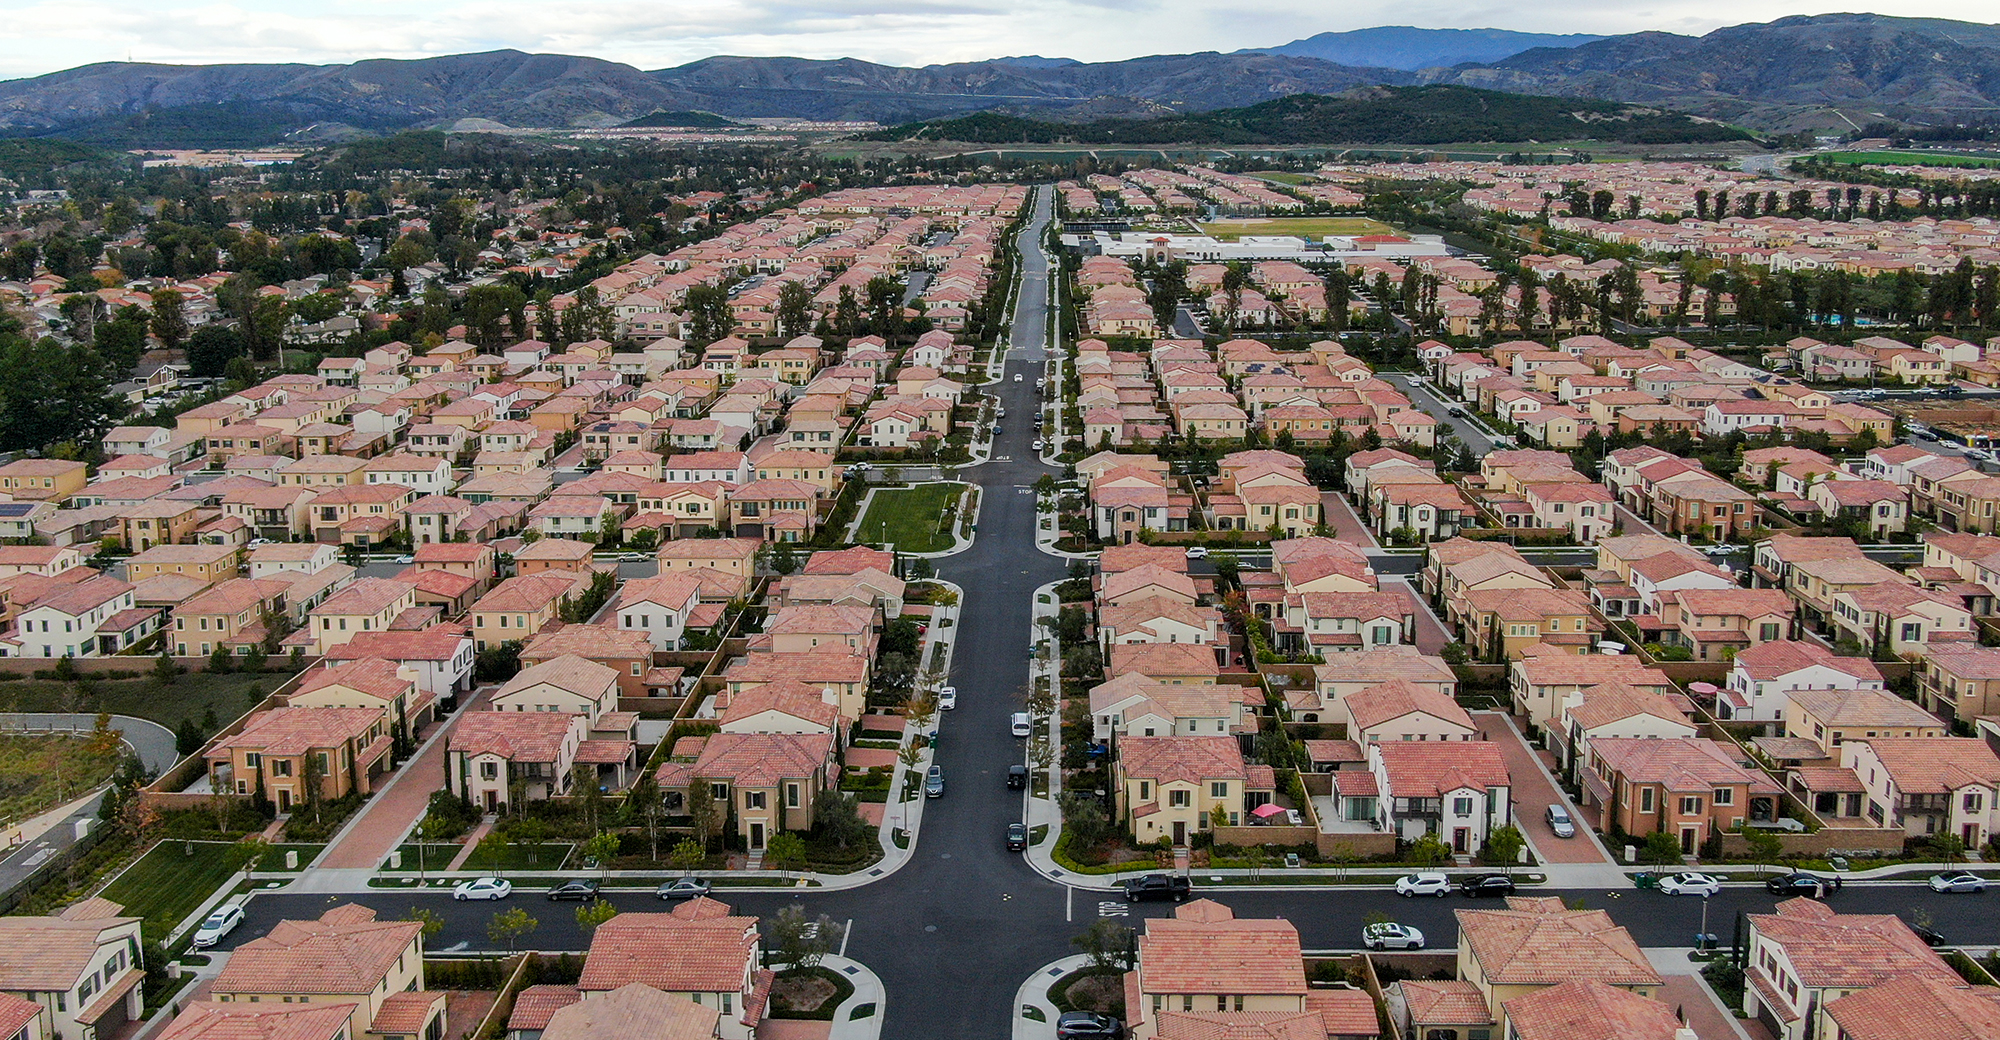 Mortgage Sector Off to Worst Start Since 2013 Despite Fed Help thumbnail